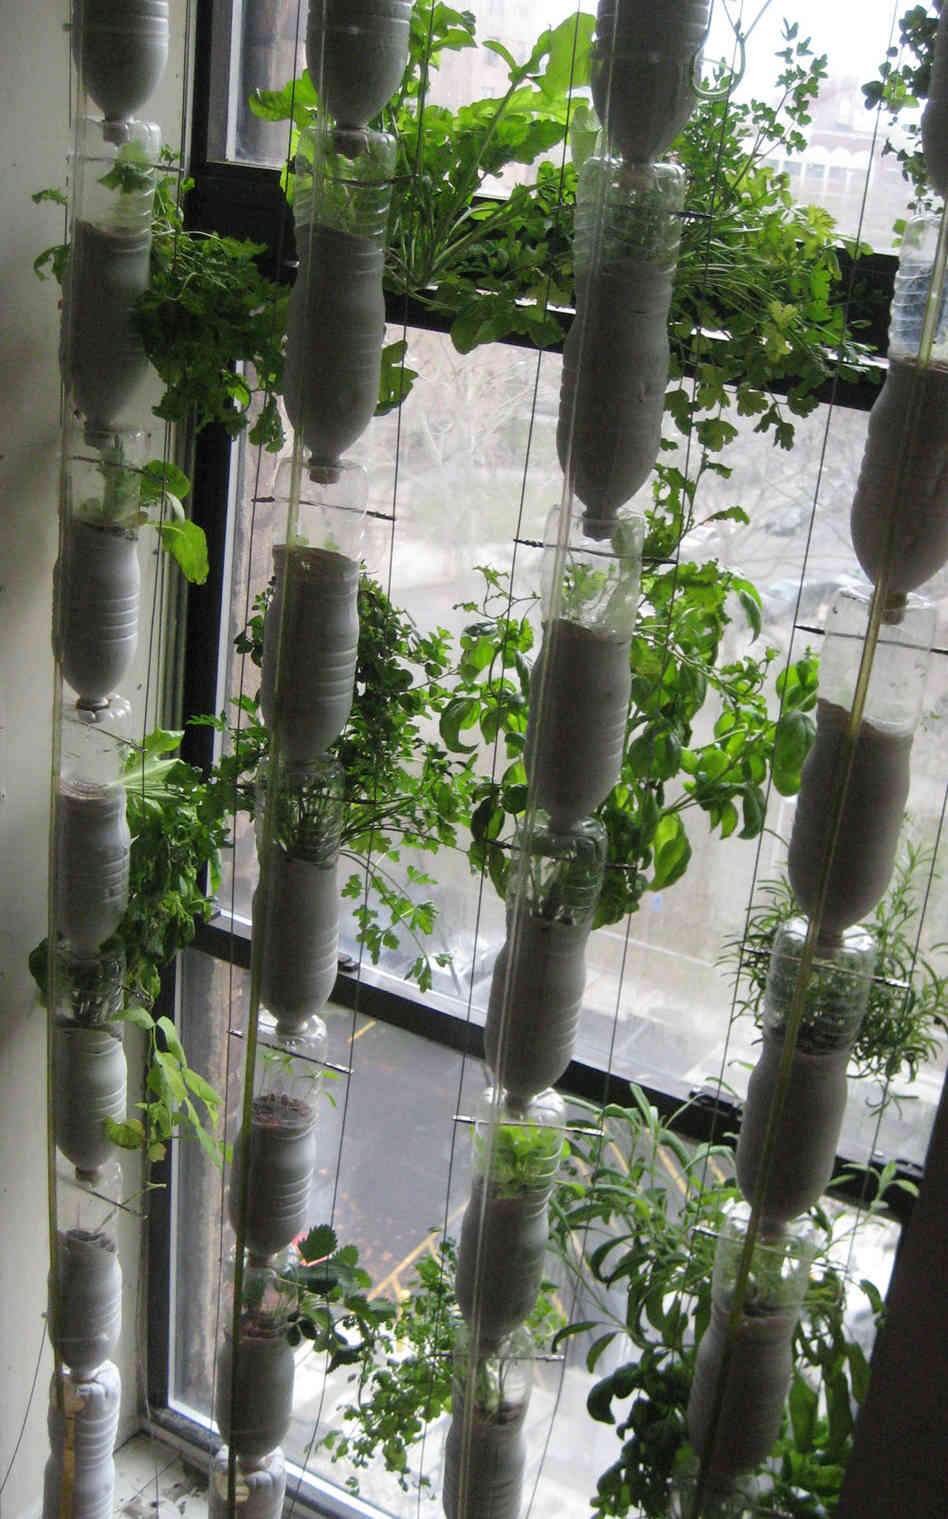 Window Farming: A Do-It-Yourself Veggie Venture